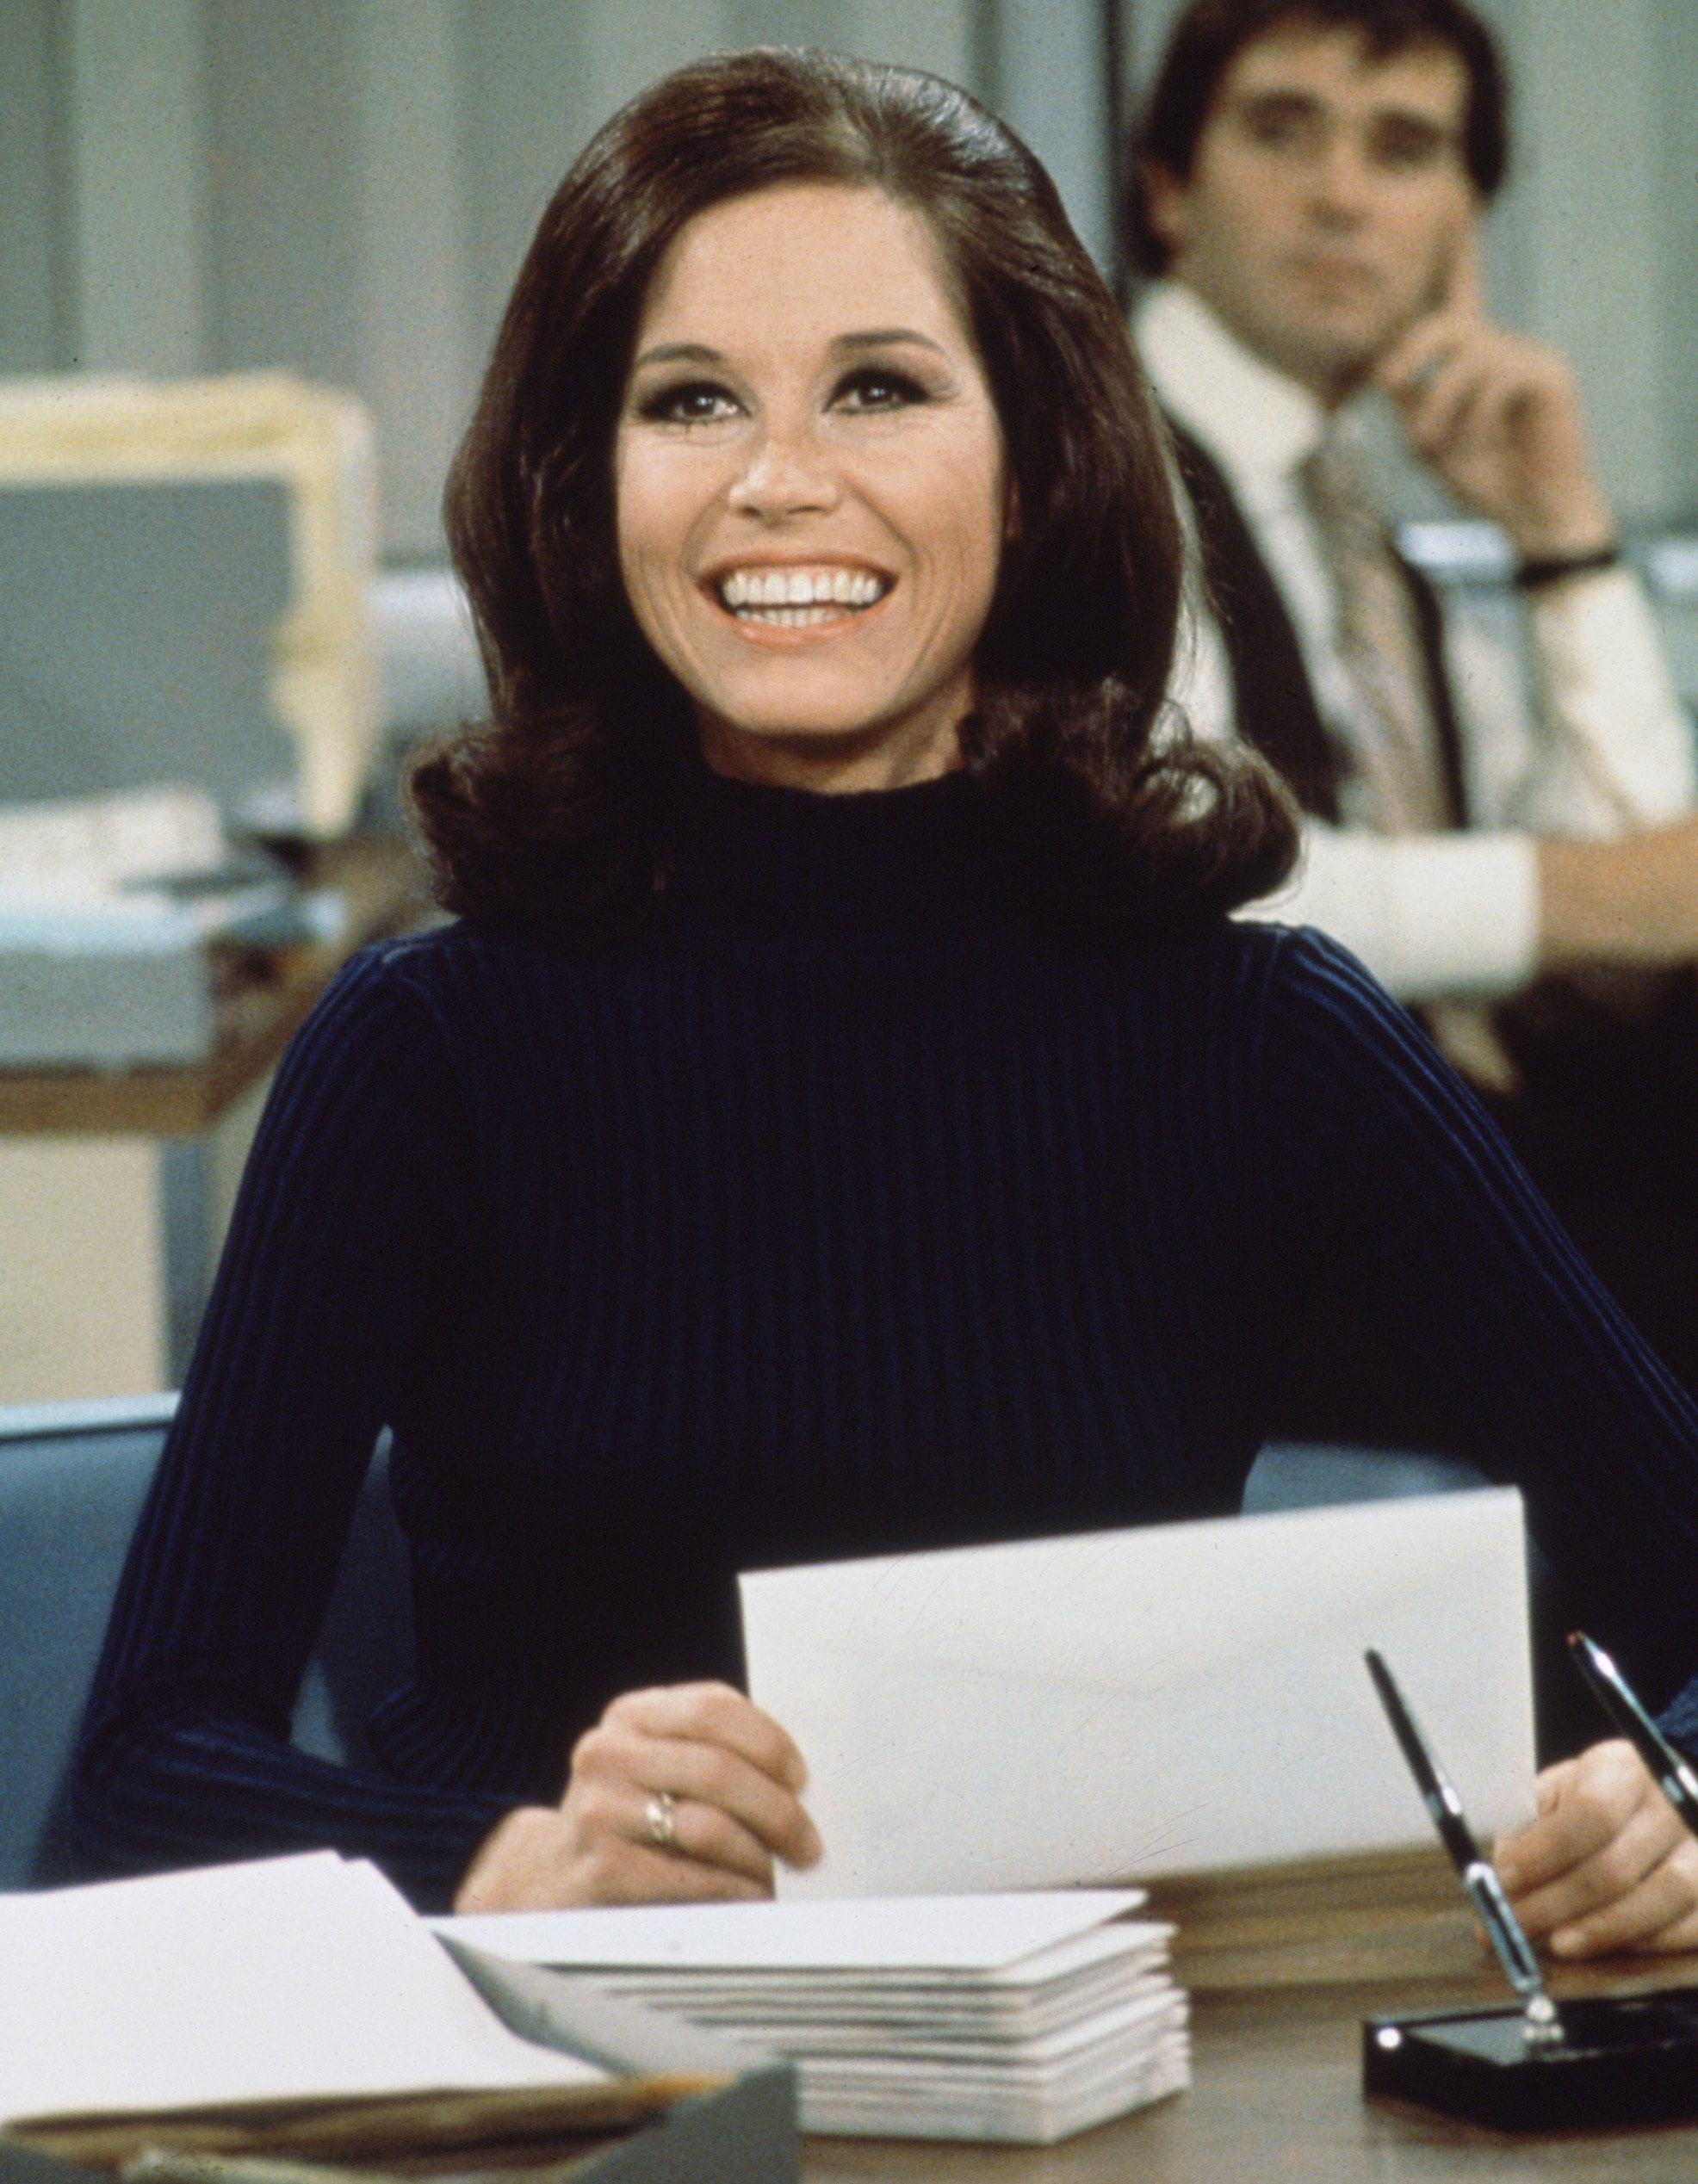 Let These Iconic Mary Tyler Moore Looks Inspire Your 9 To 5 Style